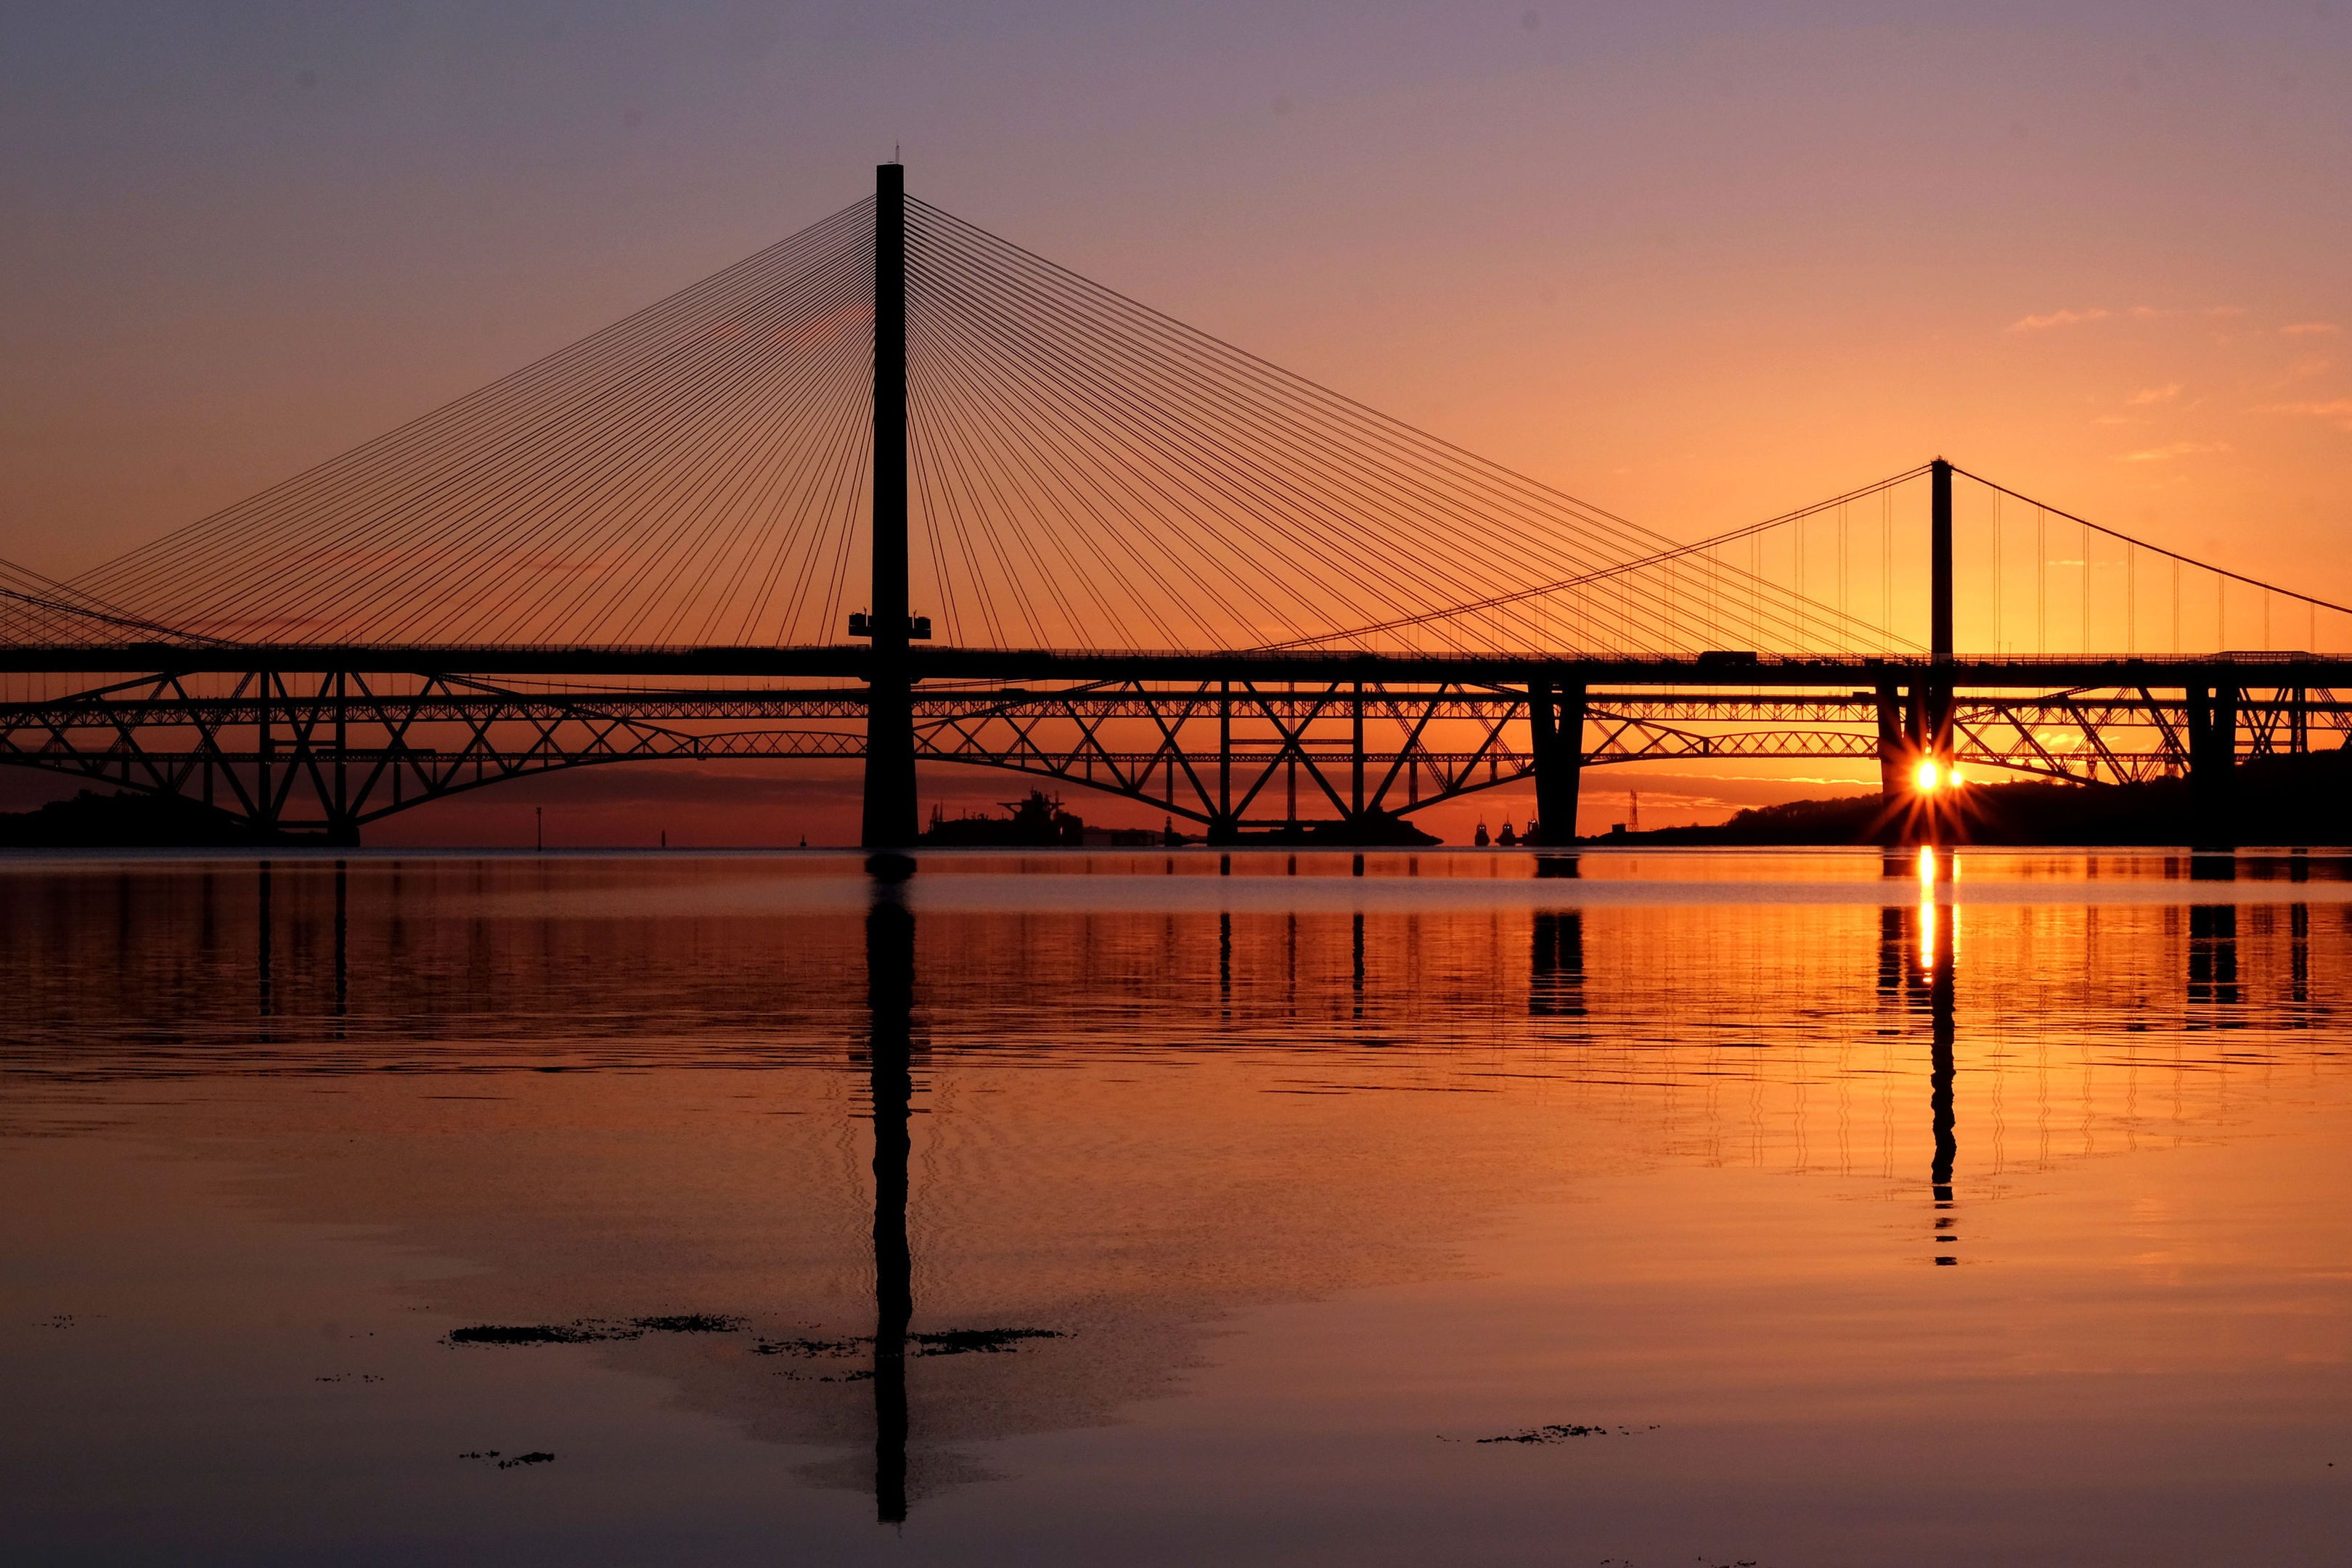 Sunrise over the Firth of Forth, South Queensferry (Jane Barlow/PA Wire)